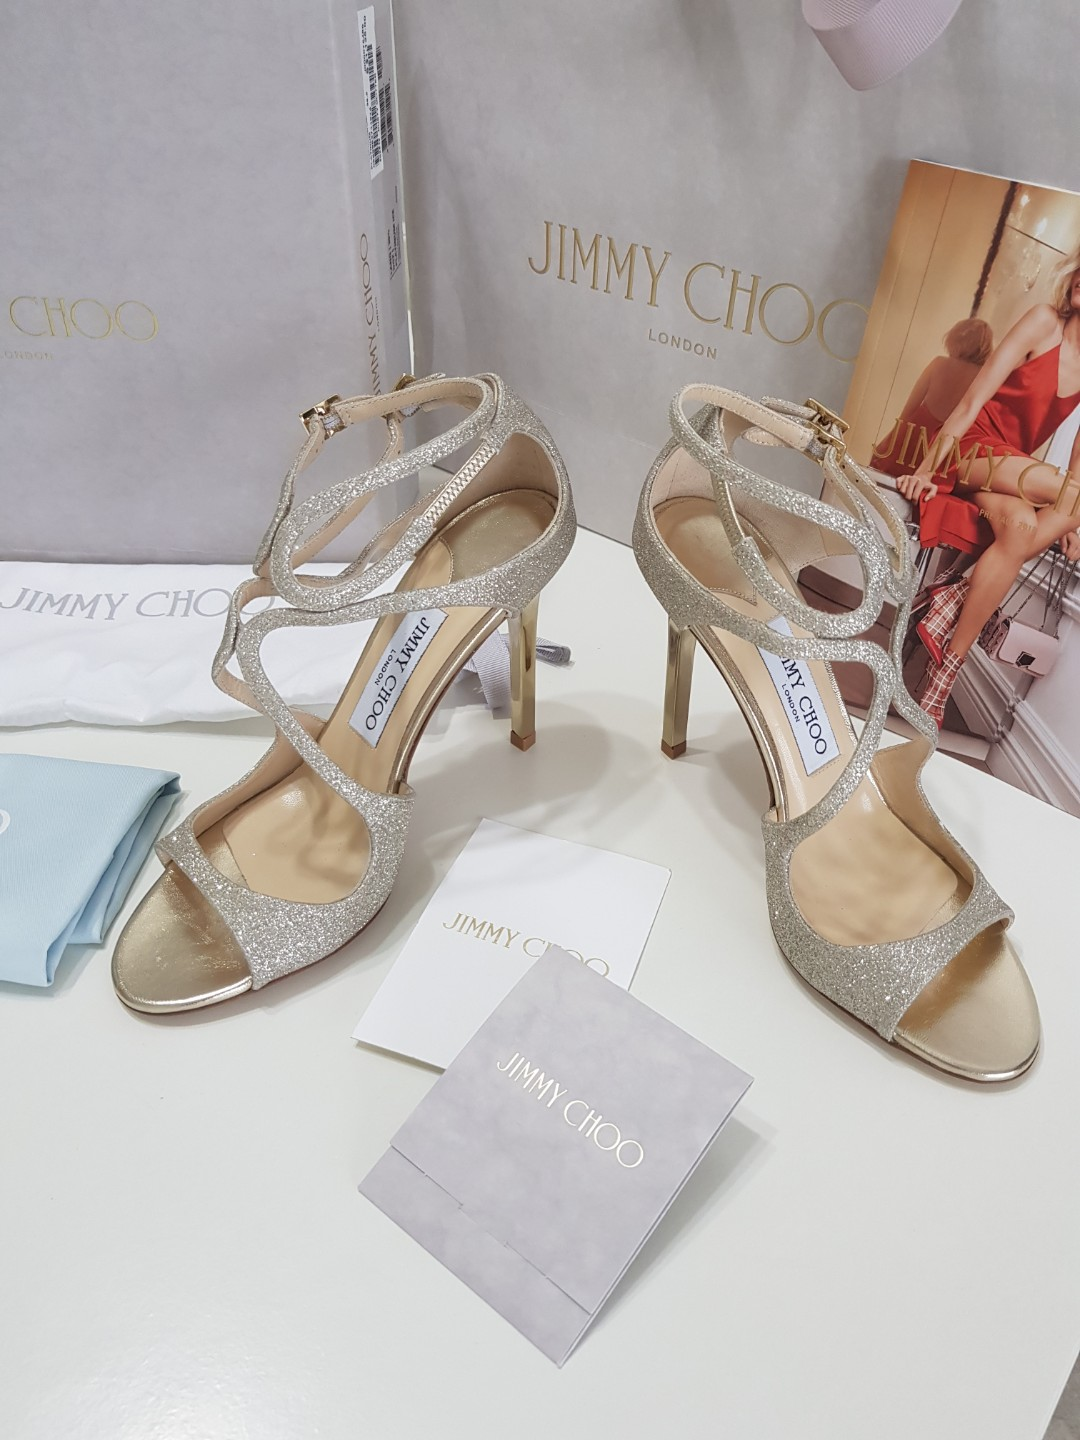 2b90549de Jimmy Choo Heels (Used once